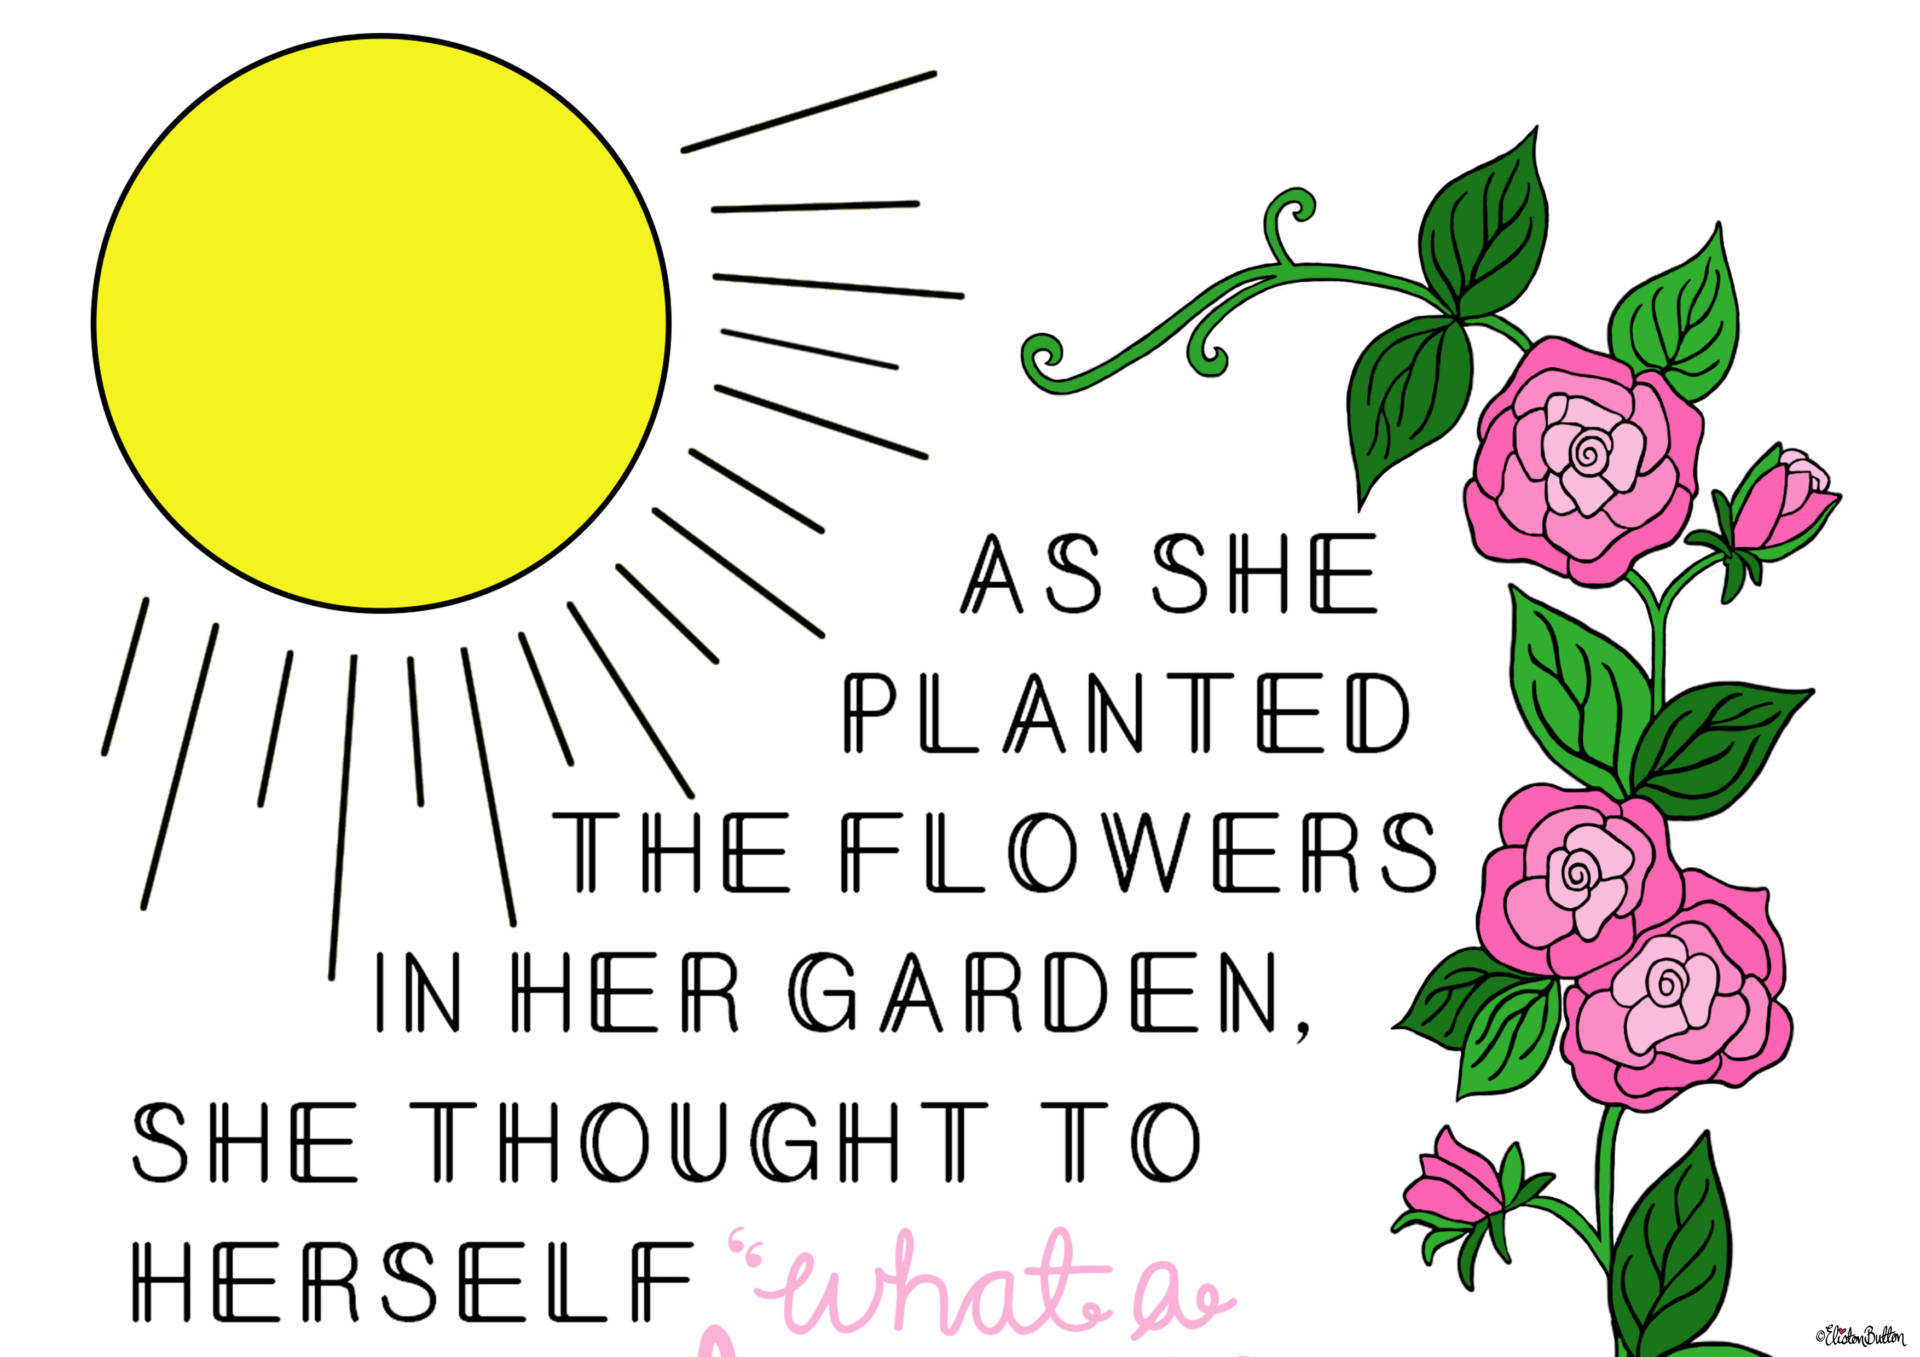 What a Wonderful World Gardening Quote Print by Eliston Button - Top Section - Create 30 – No. 25 – Wonderful World Garden Quote Print at www.elistonbutton.com - Eliston Button - That Crafty Kid – Art, Design, Craft & Adventure.